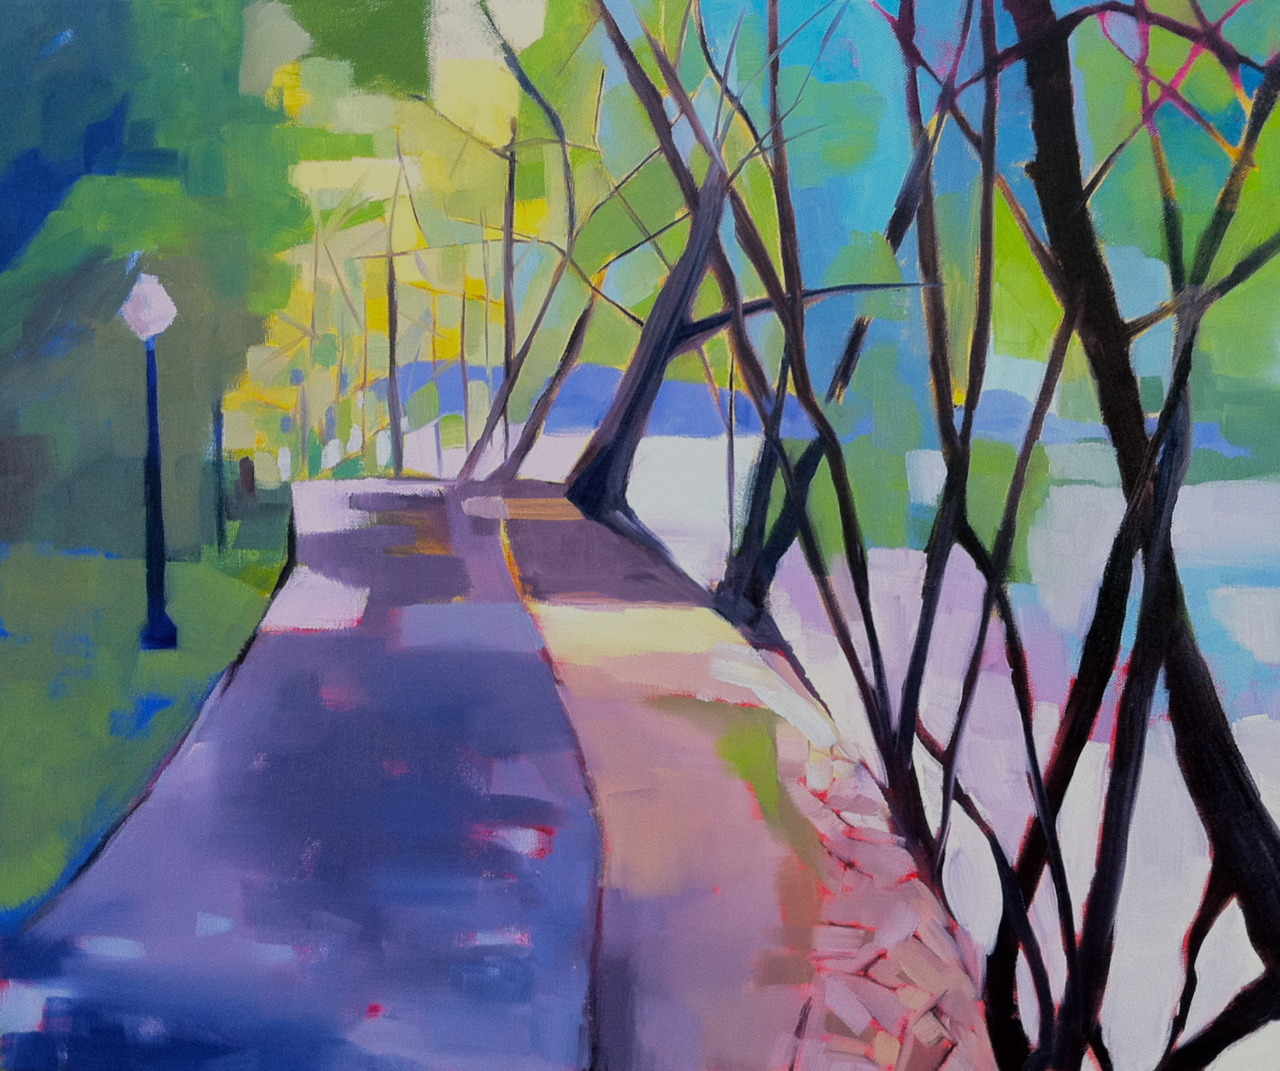 """Jamaica Pond, Boston MA   20"""" x 24"""" oil on canvas   Still playing around with the simplified branches and lines. Still working with trees and paths. And still having a ball working with this new palette."""